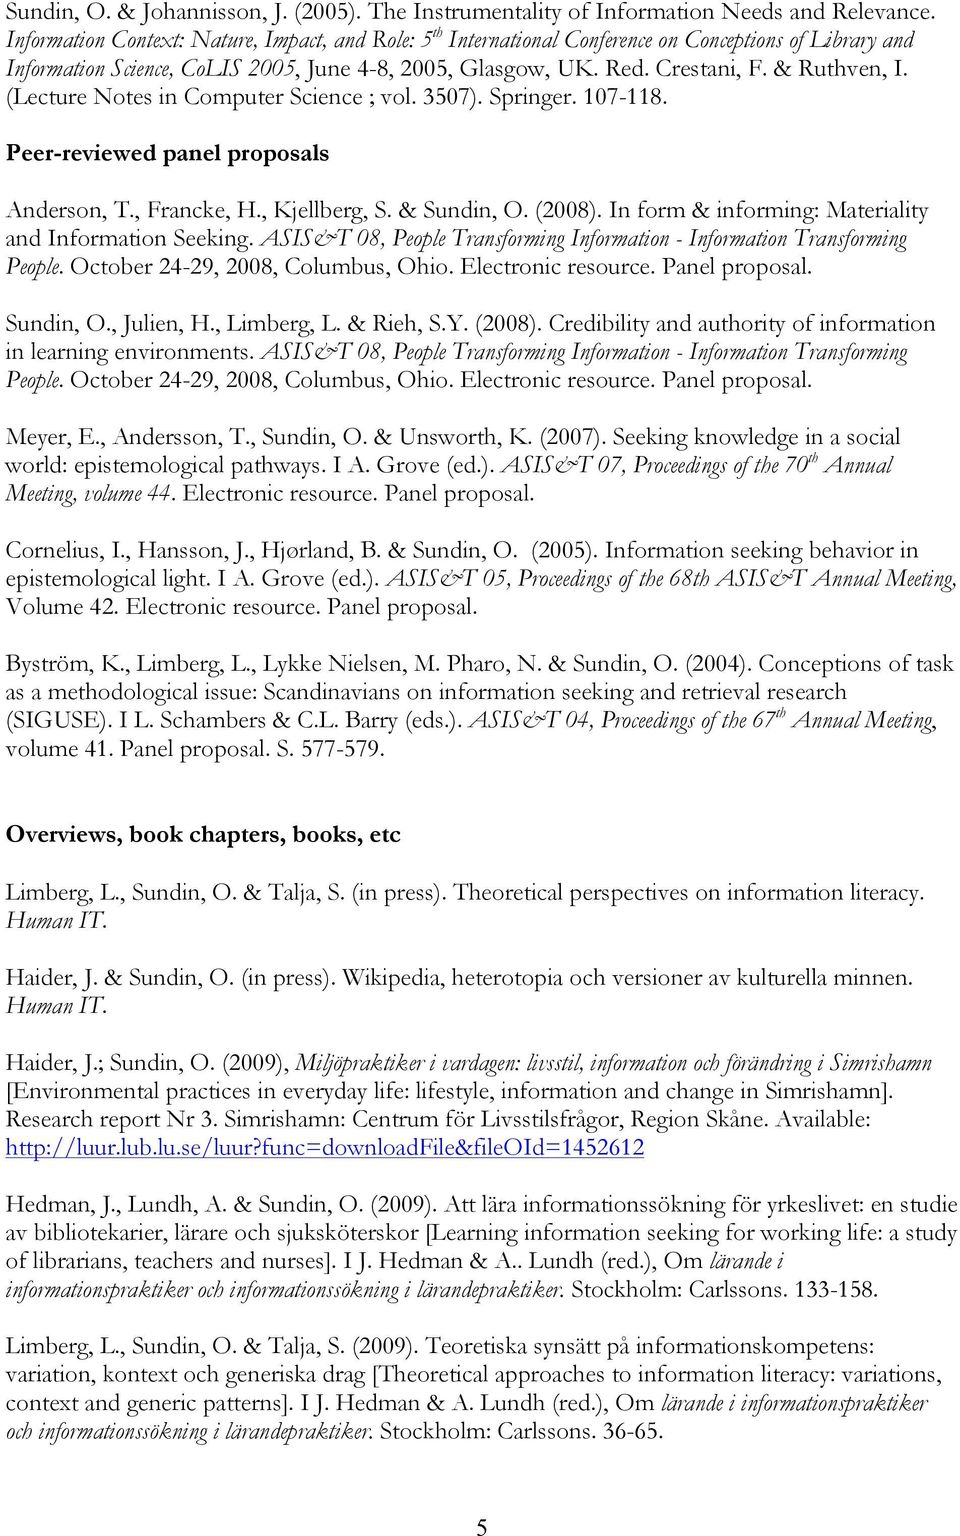 (Lecture Notes in Computer Science ; vol. 3507). Springer. 107-118. Peer-reviewed panel proposals Anderson, T., Francke, H., Kjellberg, S. & Sundin, O. (2008).